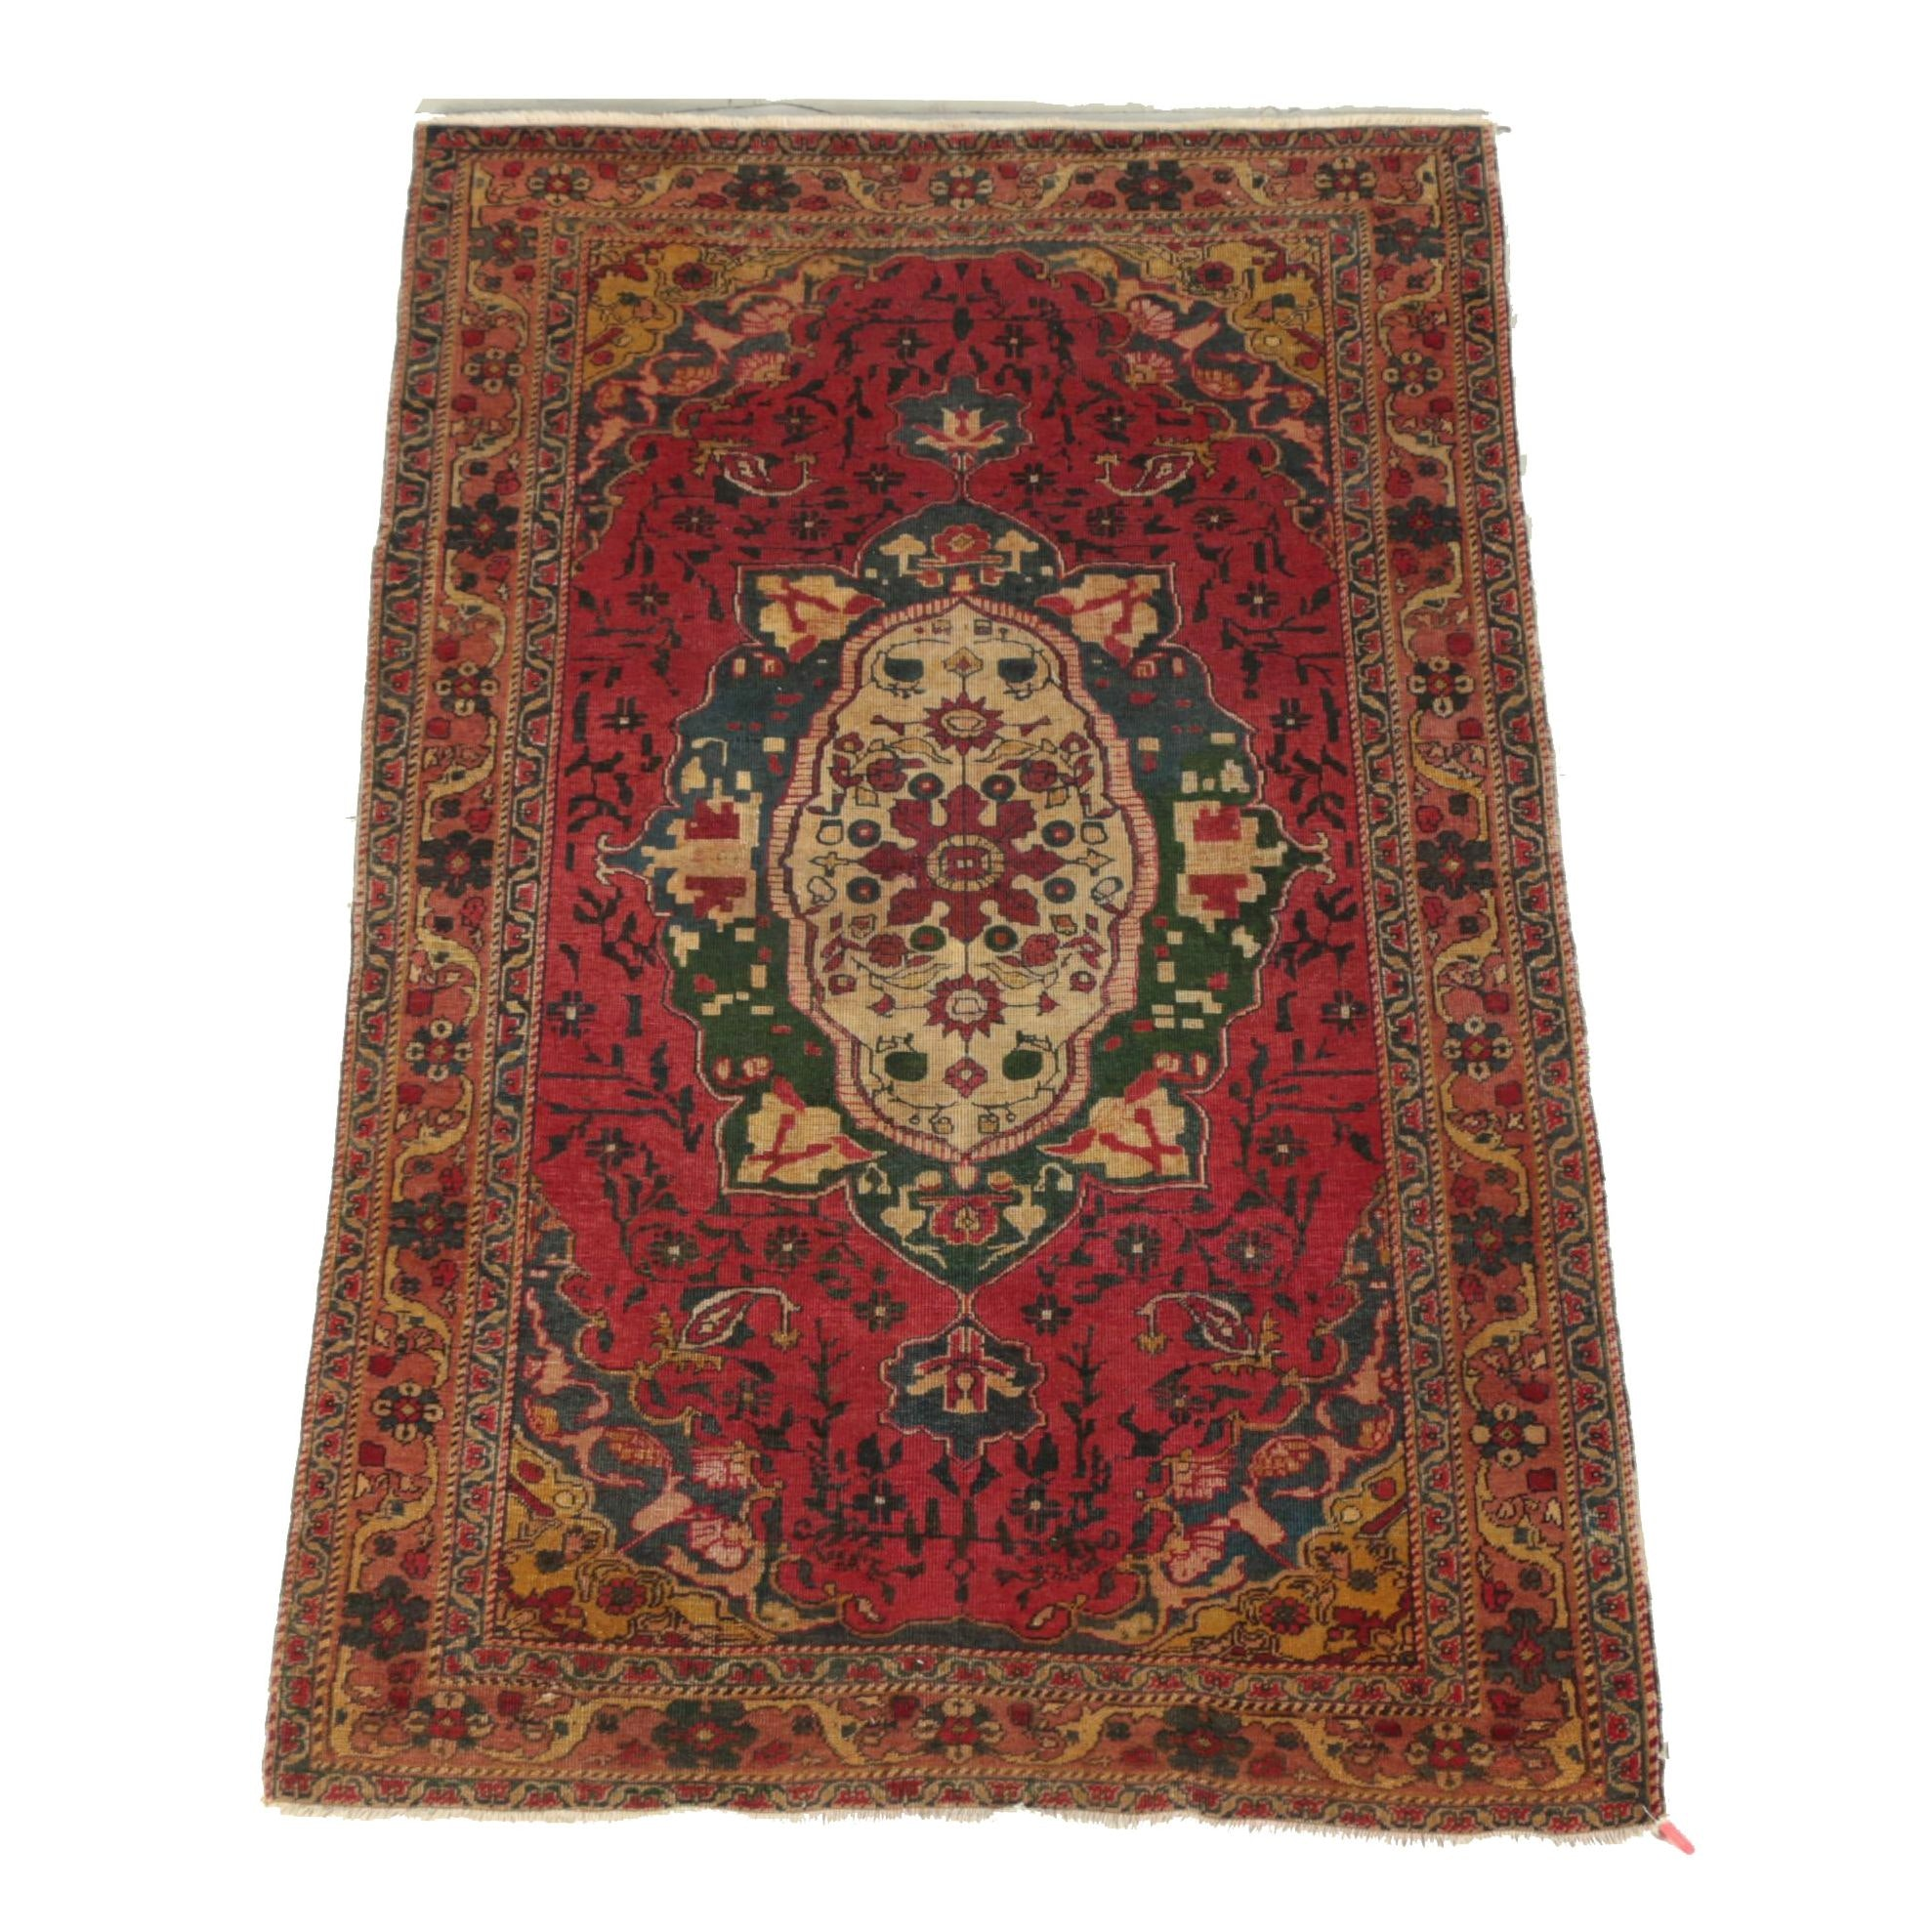 Vintage Hand-Knotted Turkish Wool Area Rug